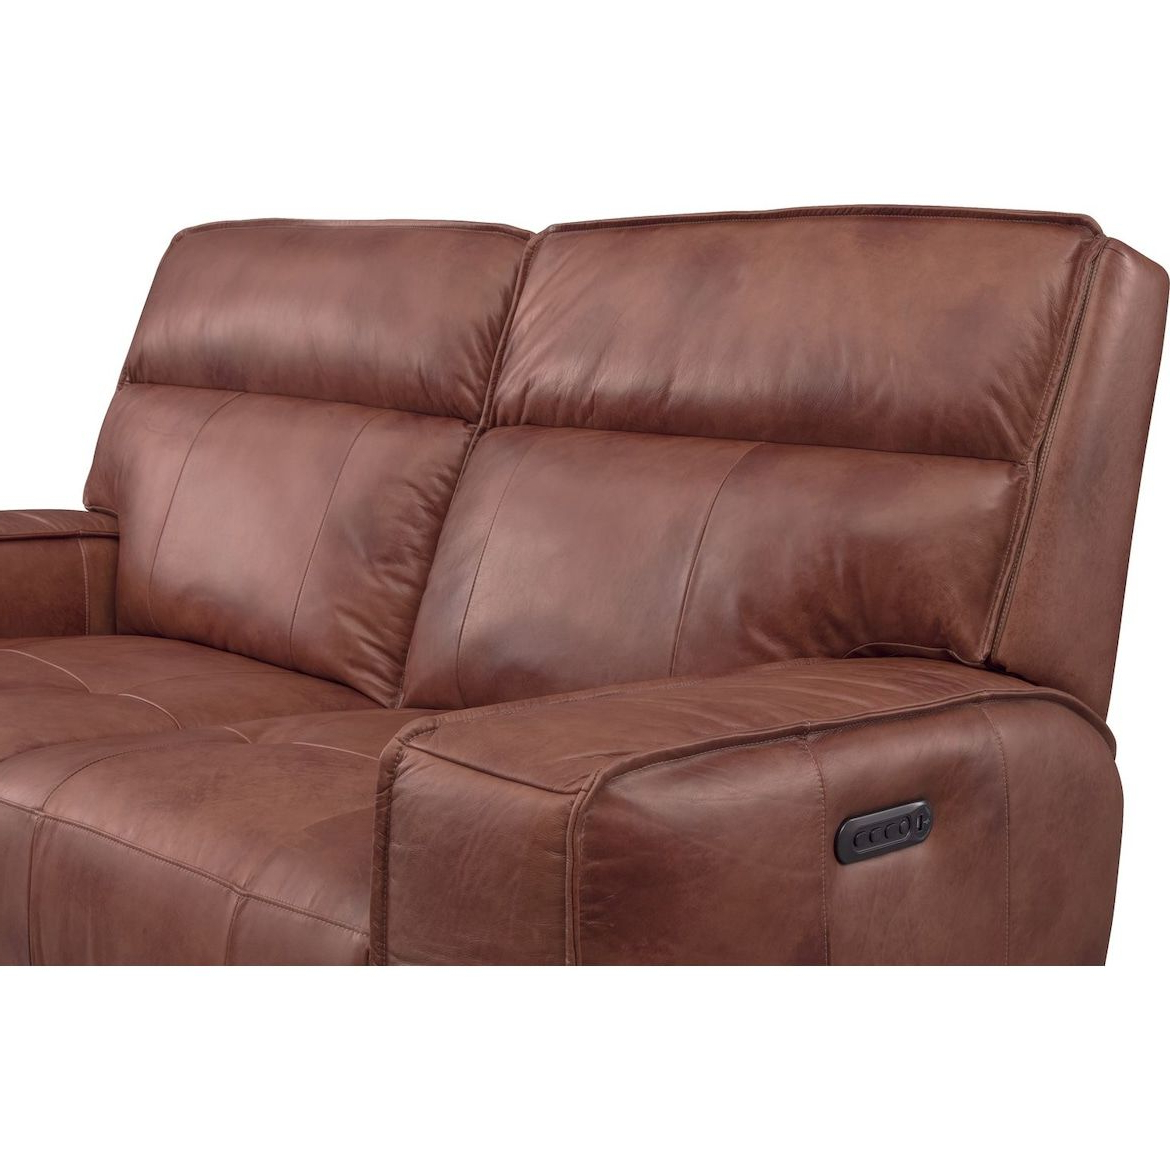 Charleston Triple Power Reclining Sofas Pertaining To Most Popular Bradley Triple Power Reclining Sofa, Loveseat And Recliner (View 2 of 20)